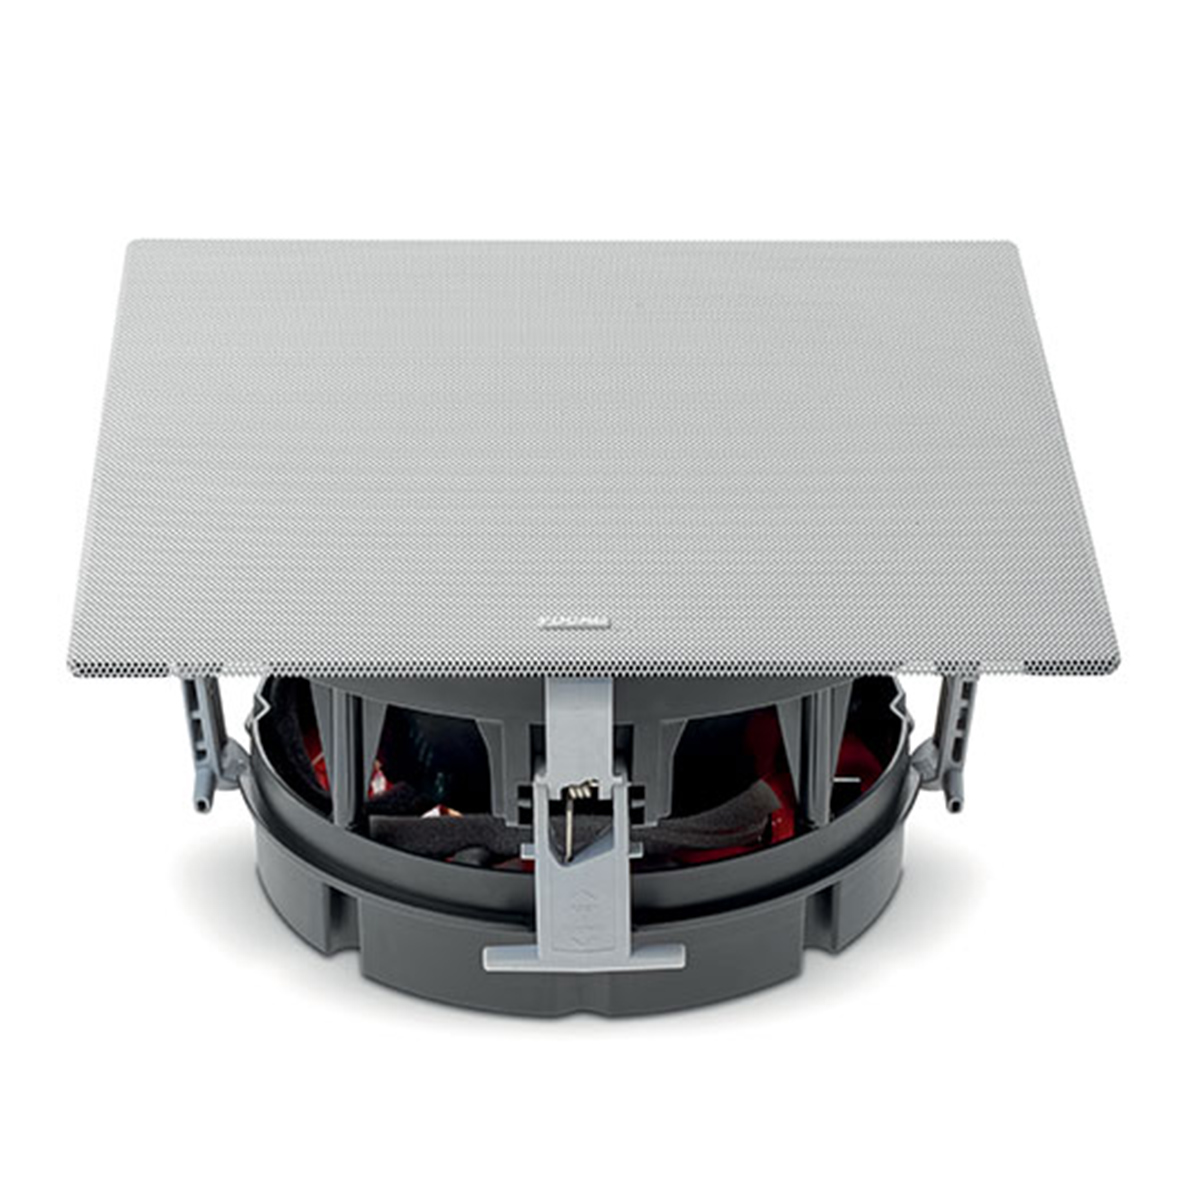 Focal 1000ica Grille Life Style Store 1